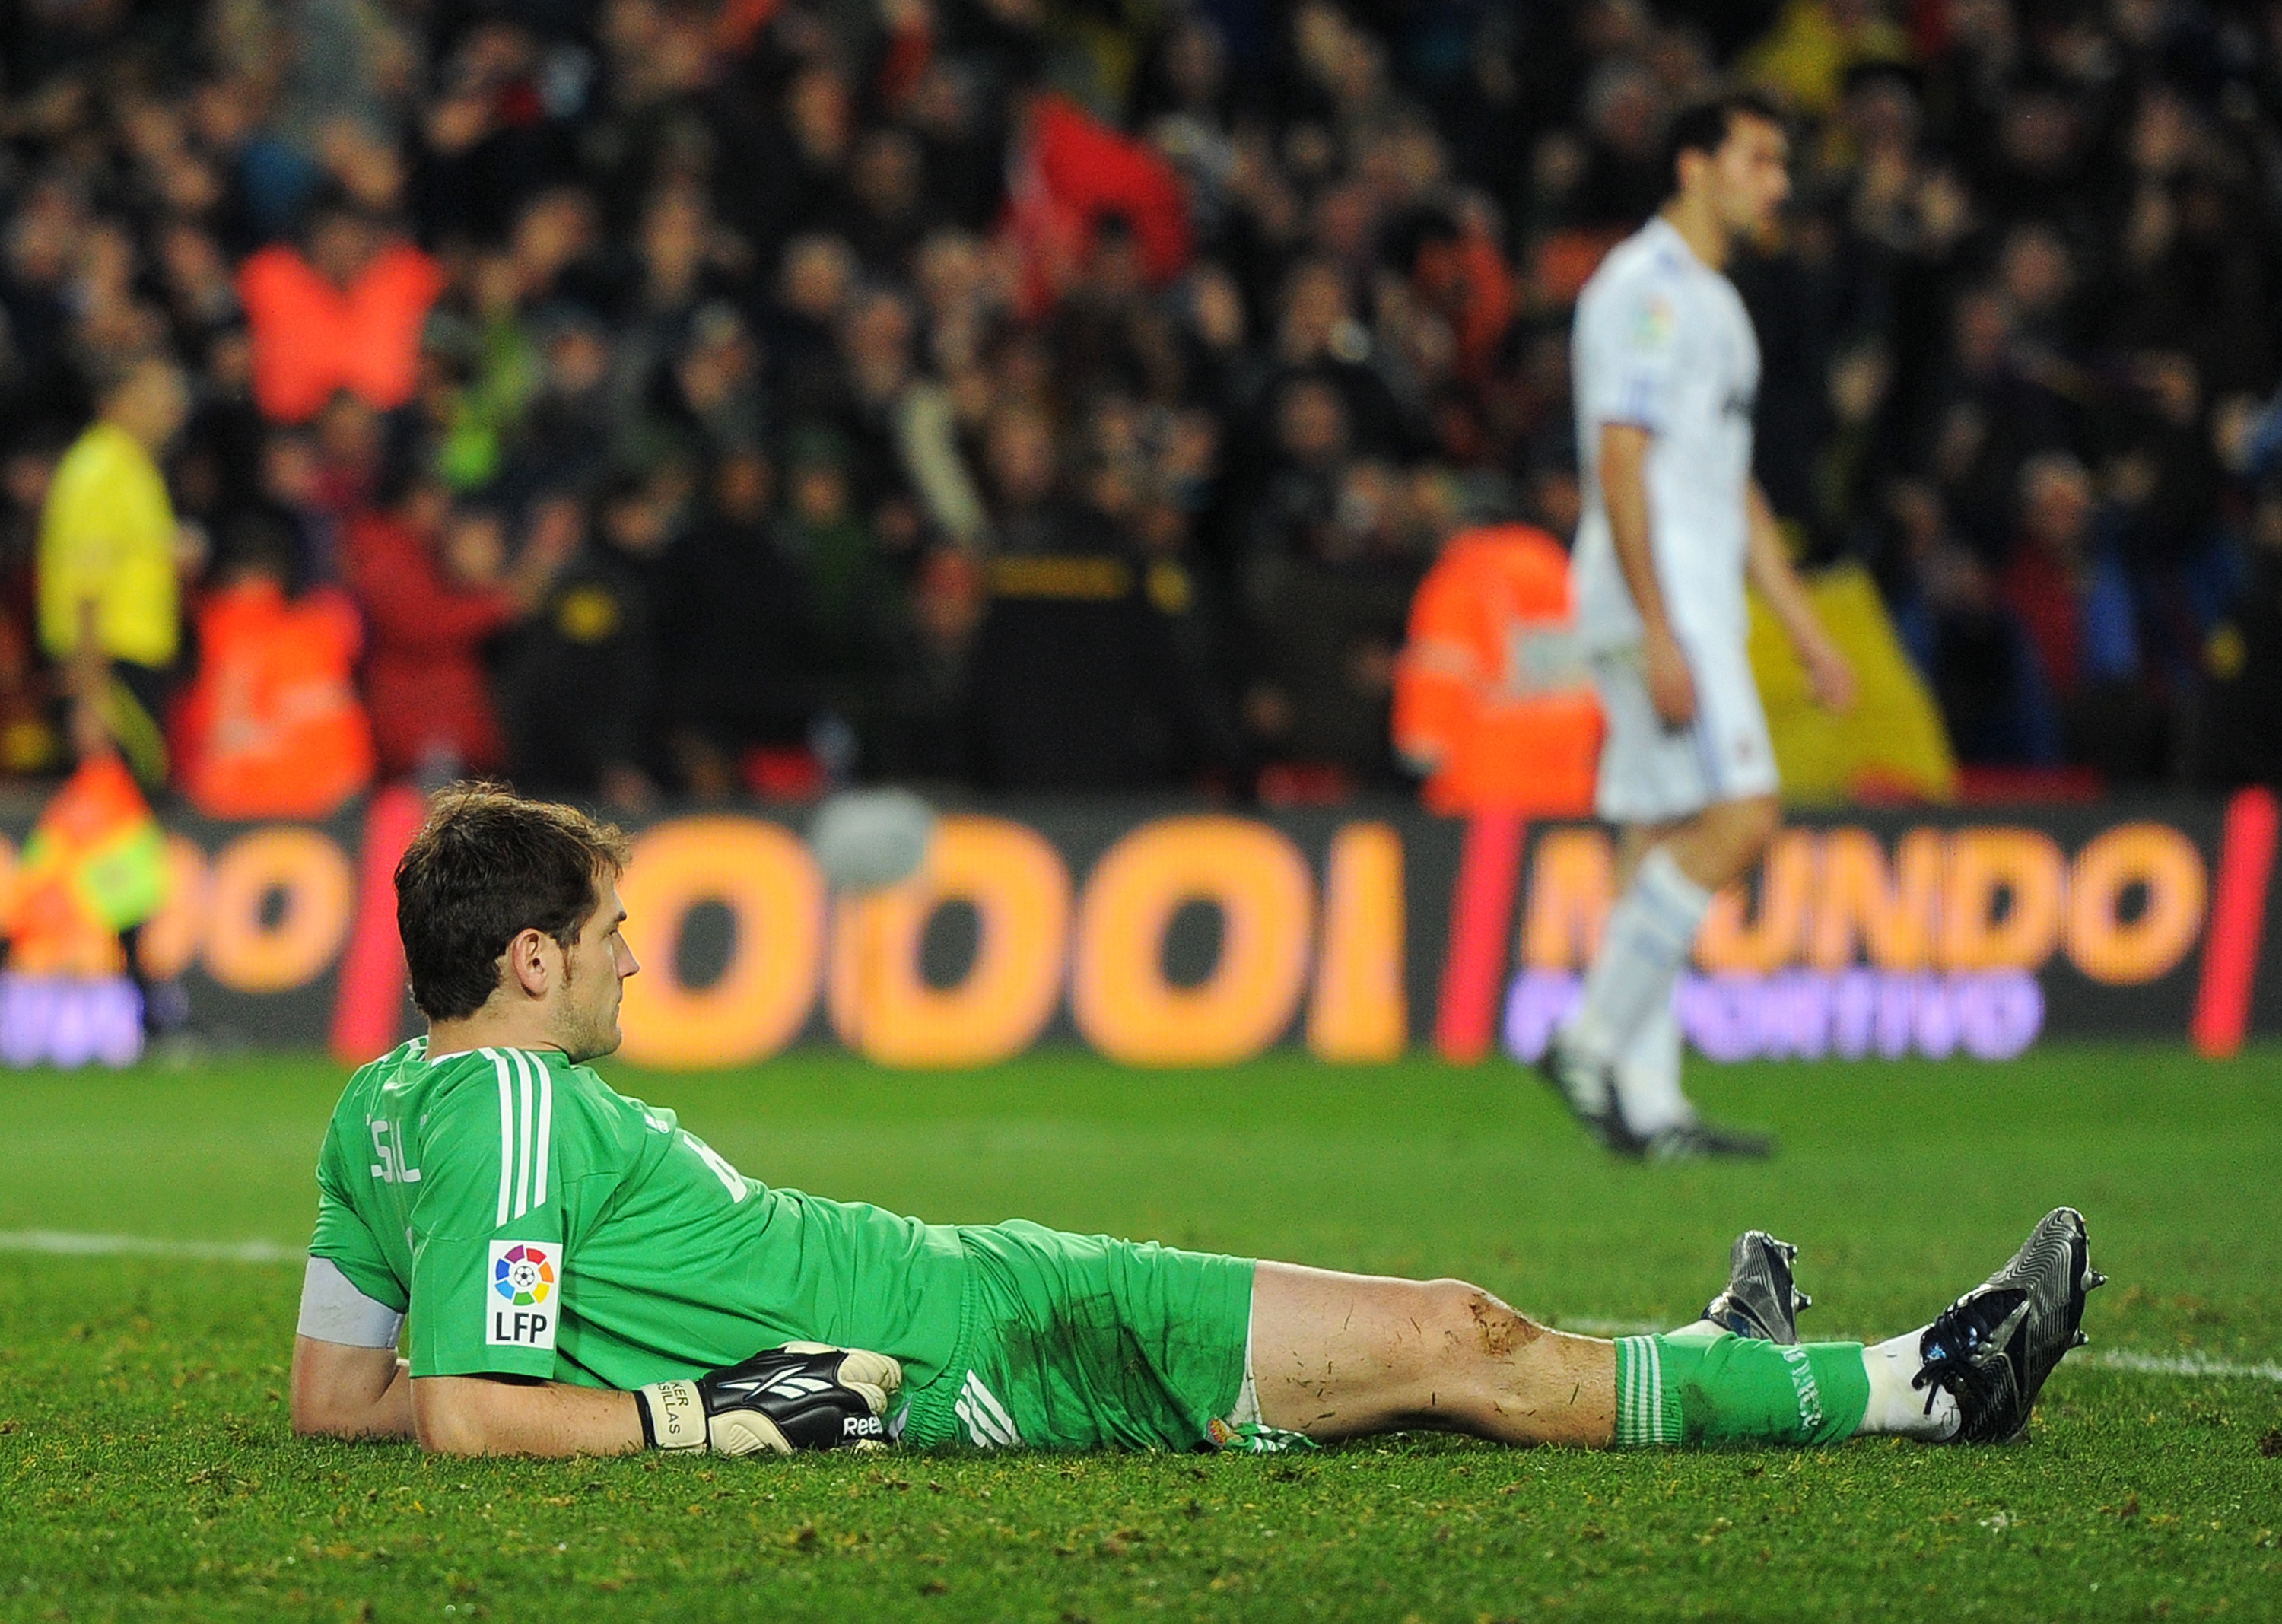 BARCELONA, SPAIN - NOVEMBER 29:  Goalkeeper Iker Casillas of Real Madrid lies dejected on the pitch after conceding his fifth goal during the la liga match between Barcelona and Real Madrid at the Camp Nou stadium on November 29, 2010 in Barcelona, Spain.